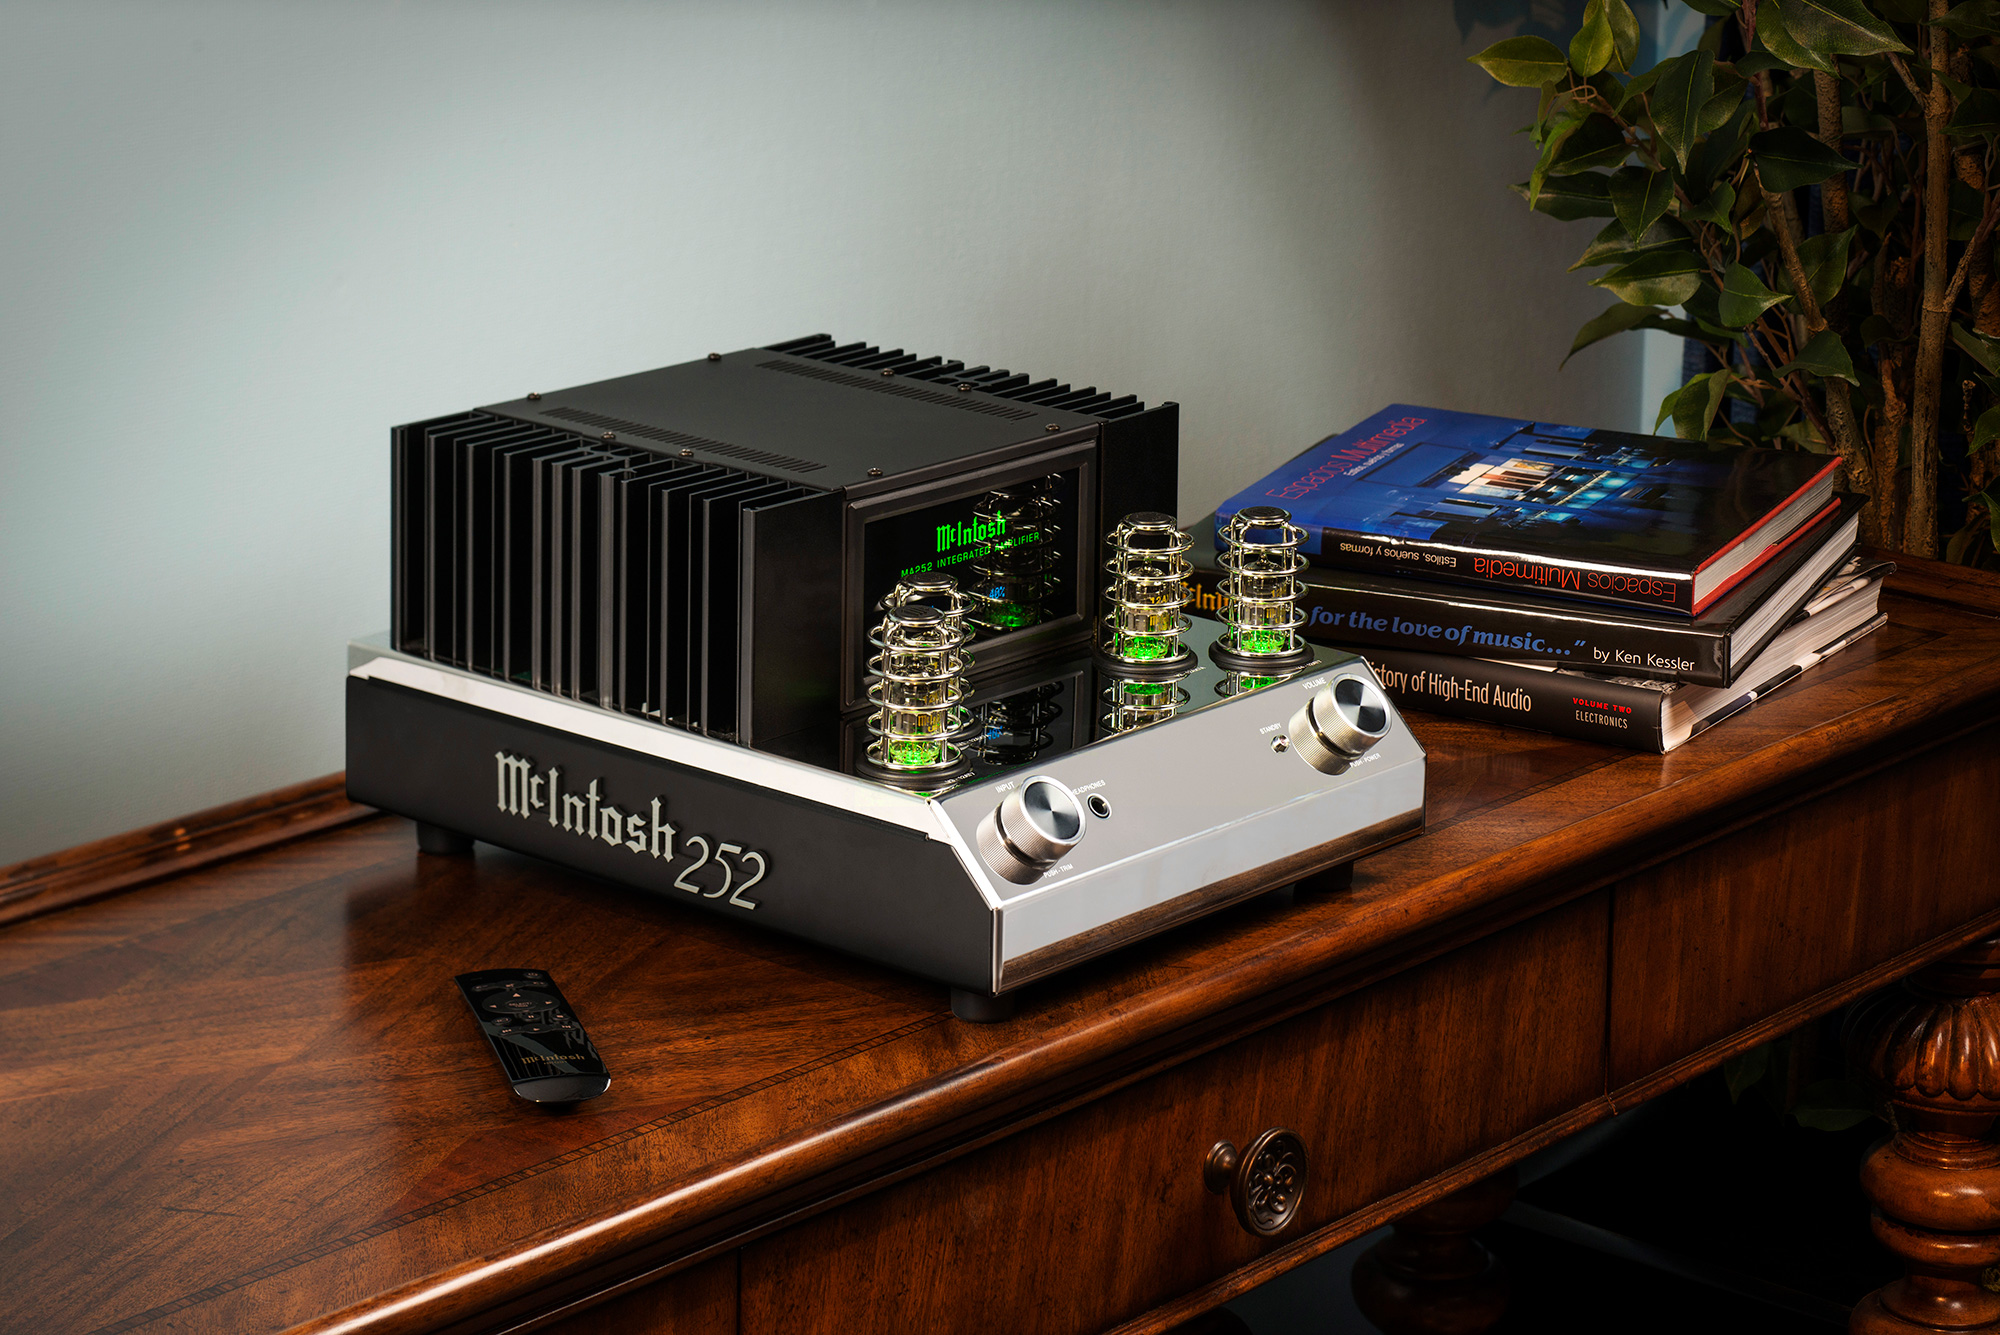 Mcintosh Ma252 Integrated Amplifier Circuit Reviews Online Shopping On Dual